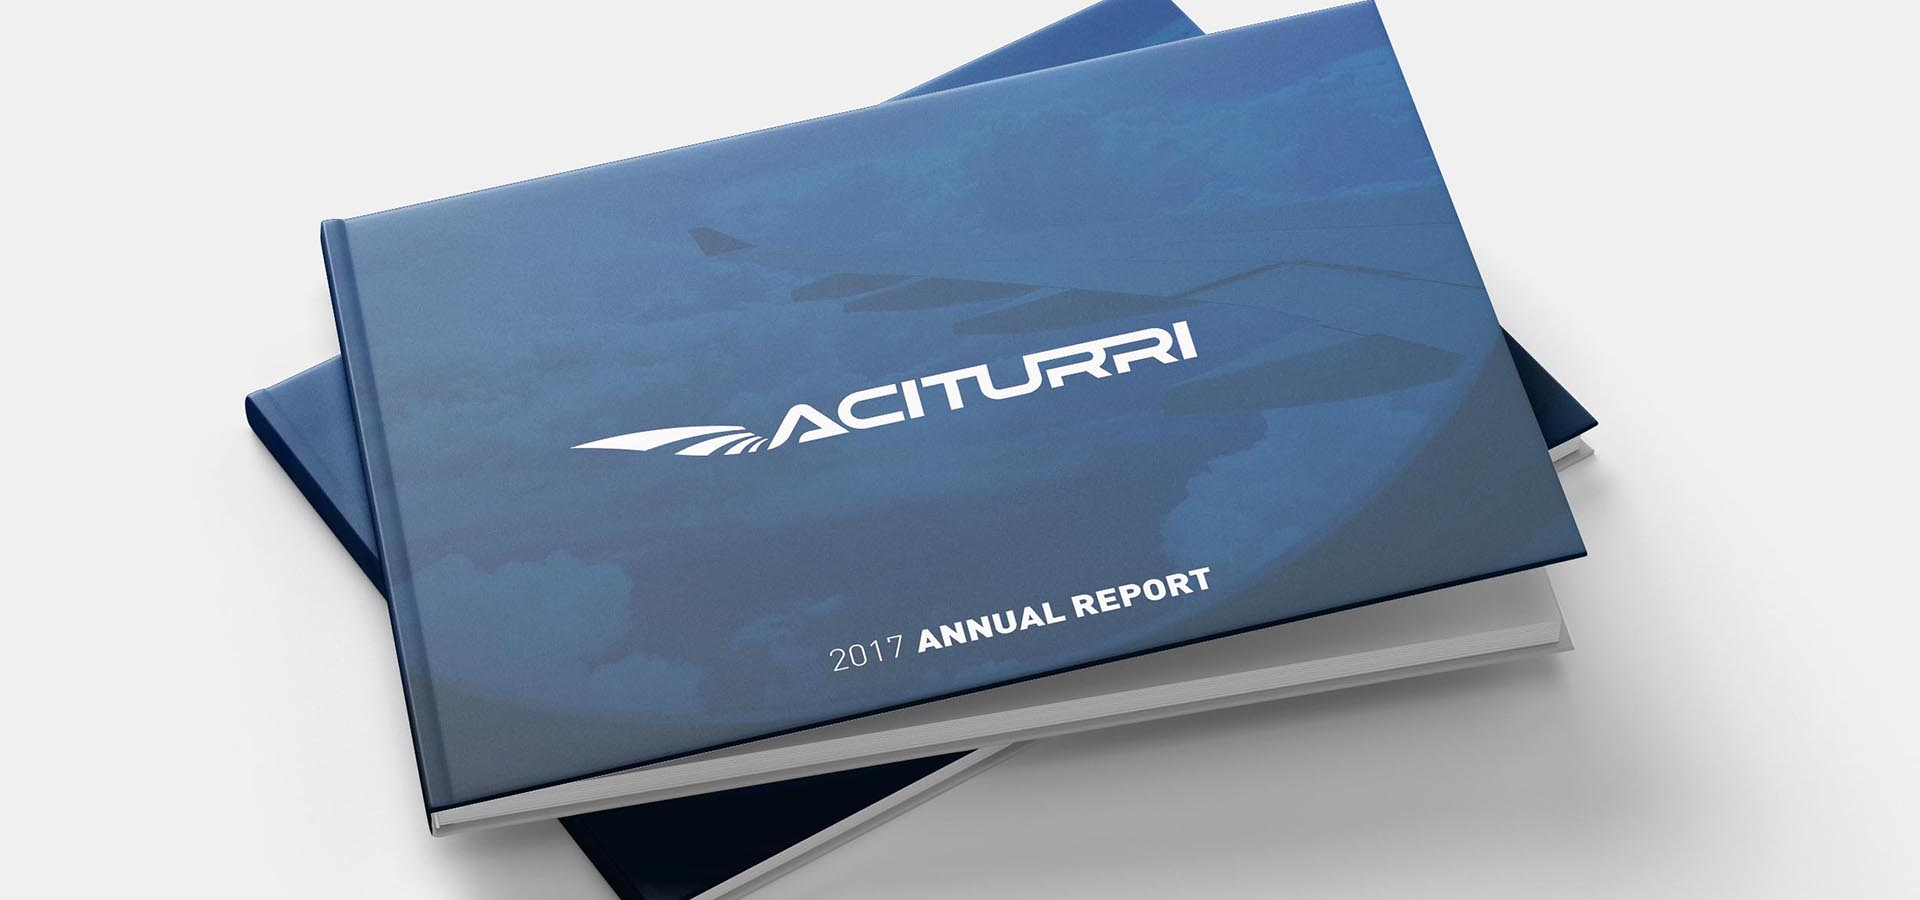 MEMORIA_ACITURRI_2017 Annual report for Aciturri